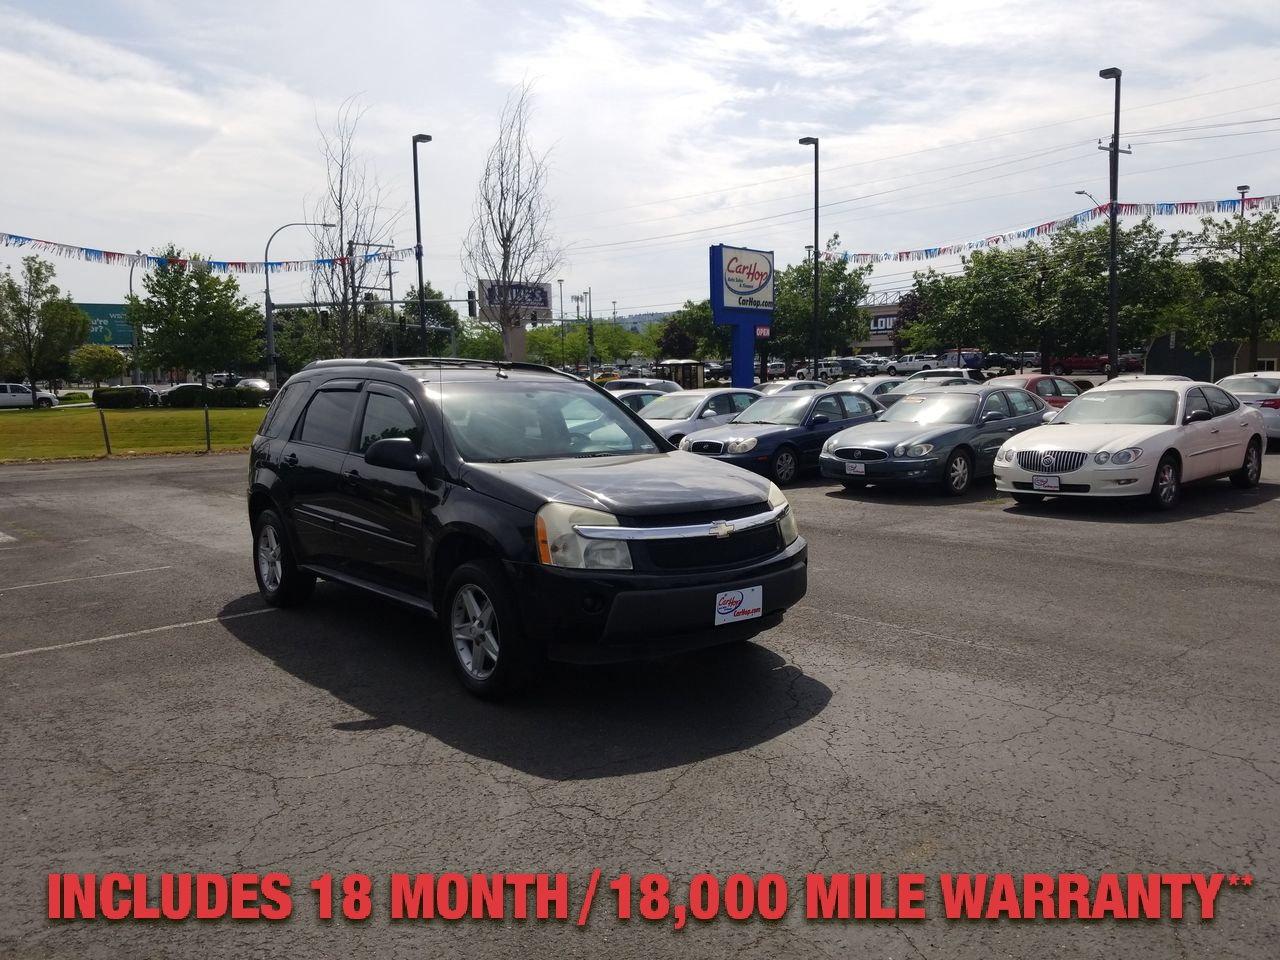 Pre-Owned 2005 CHEVROLET EQUINOX LT Sport U